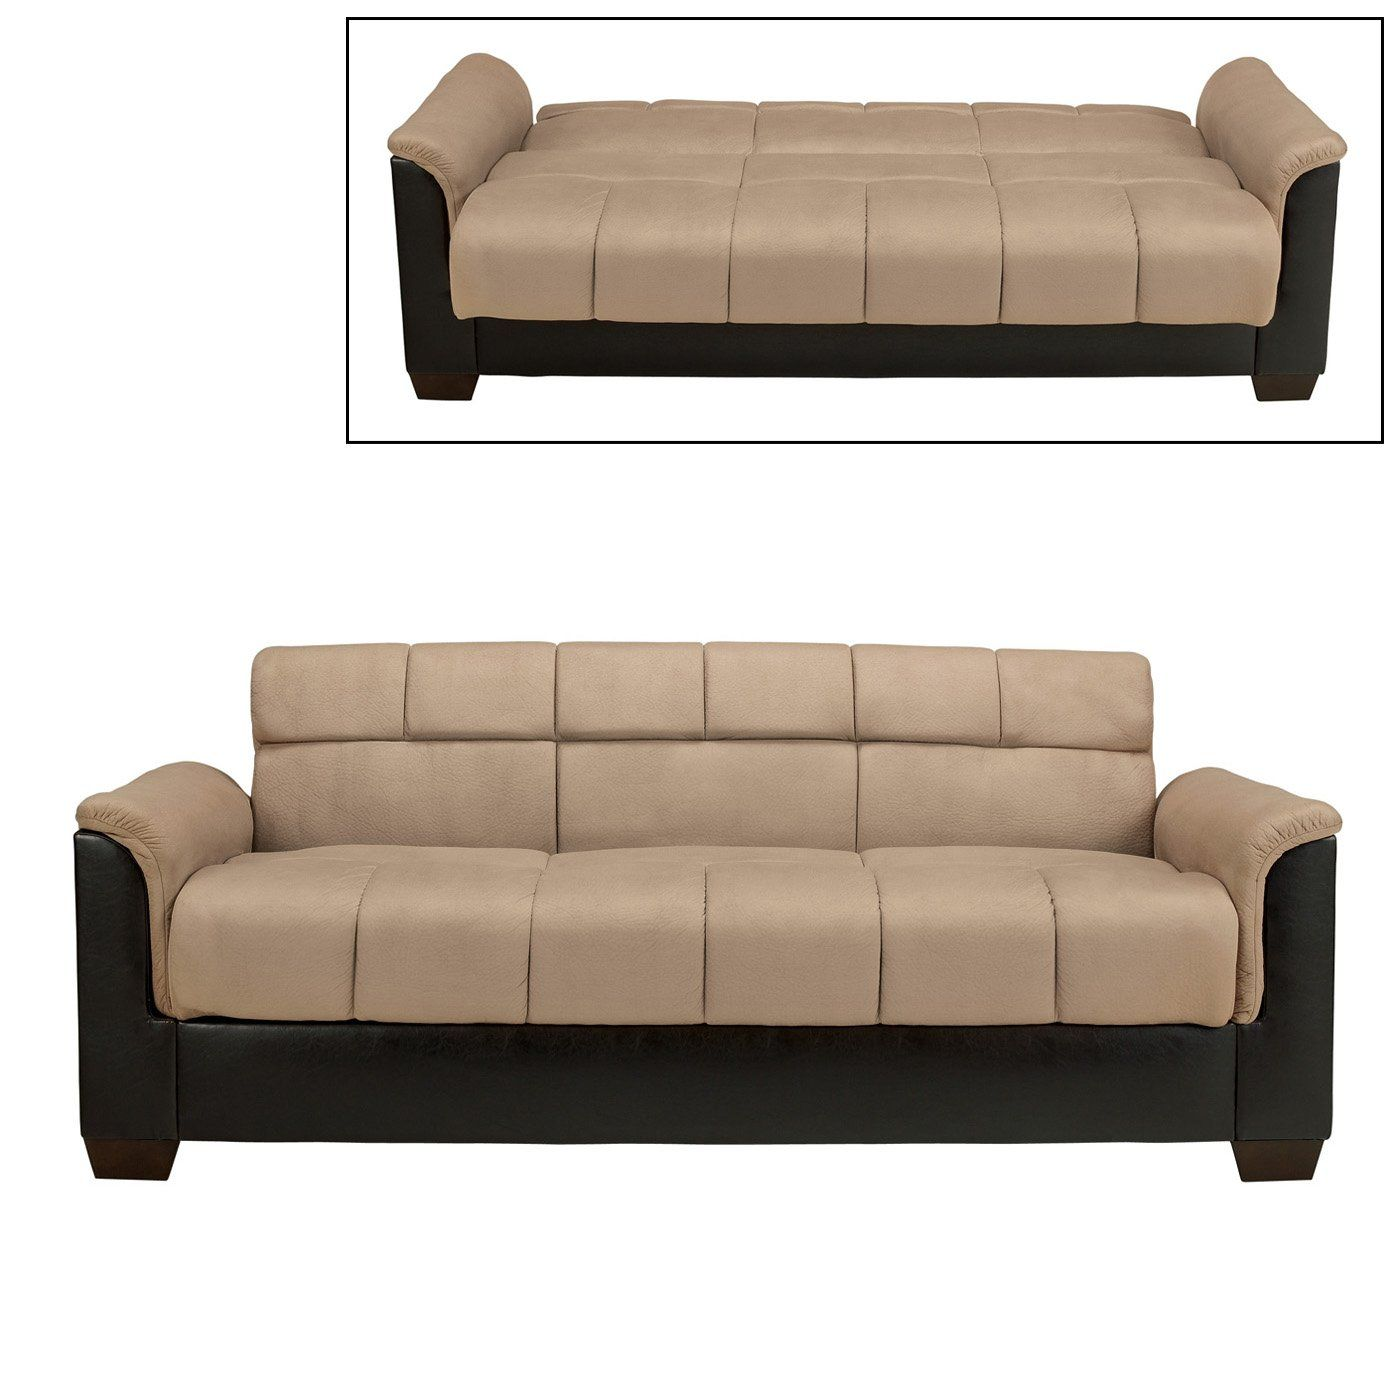 Signature Design By Ashley 5850164 Roxanne Flip Flop Sofa With Storage